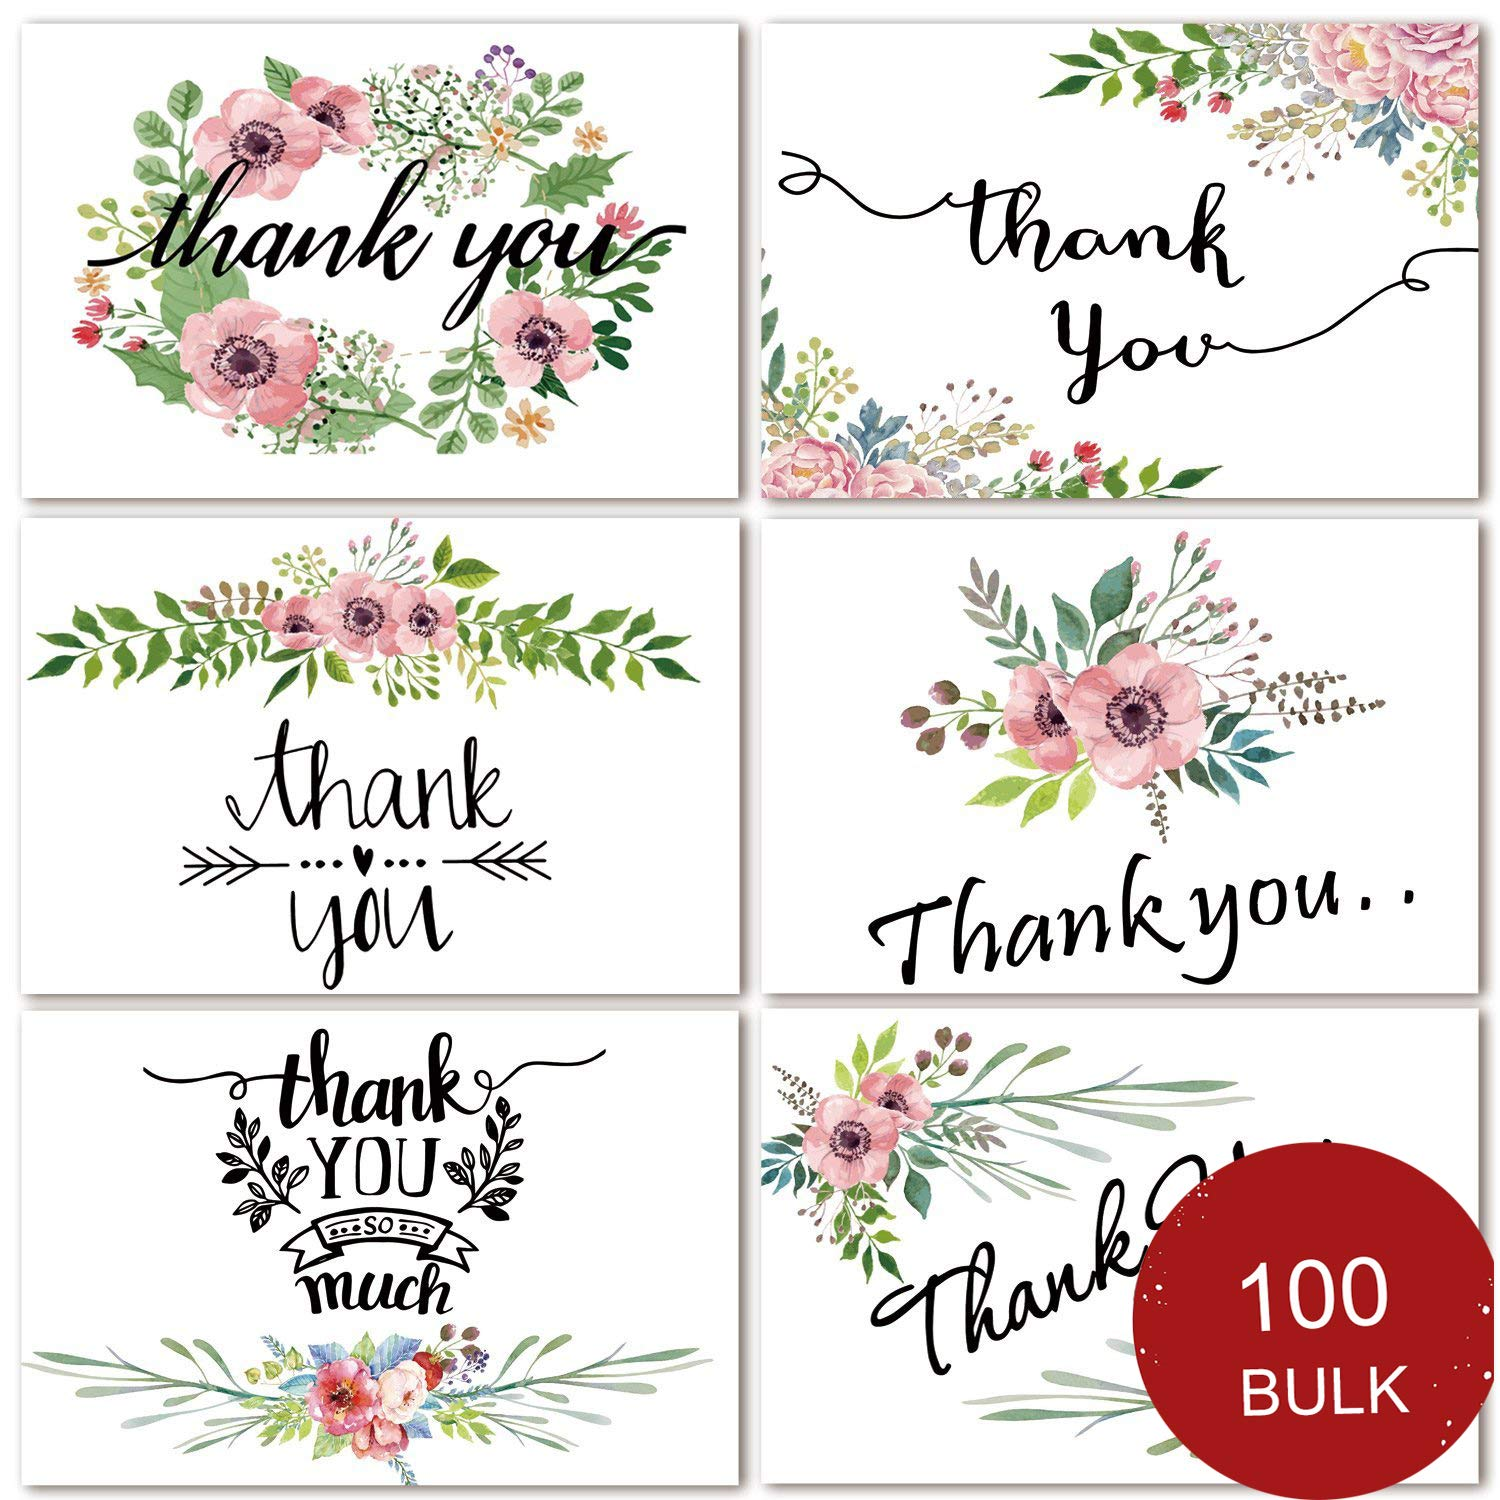 Bulk Thank You Cards, 100 Count Thank You Notes for Wedding, Baby Shower, Bridal Shower, Anniversary, 6 Floral Flower Design, Blank On the Inside, 4 x 6 inch Thank You Cards with Adhesive Envelopes